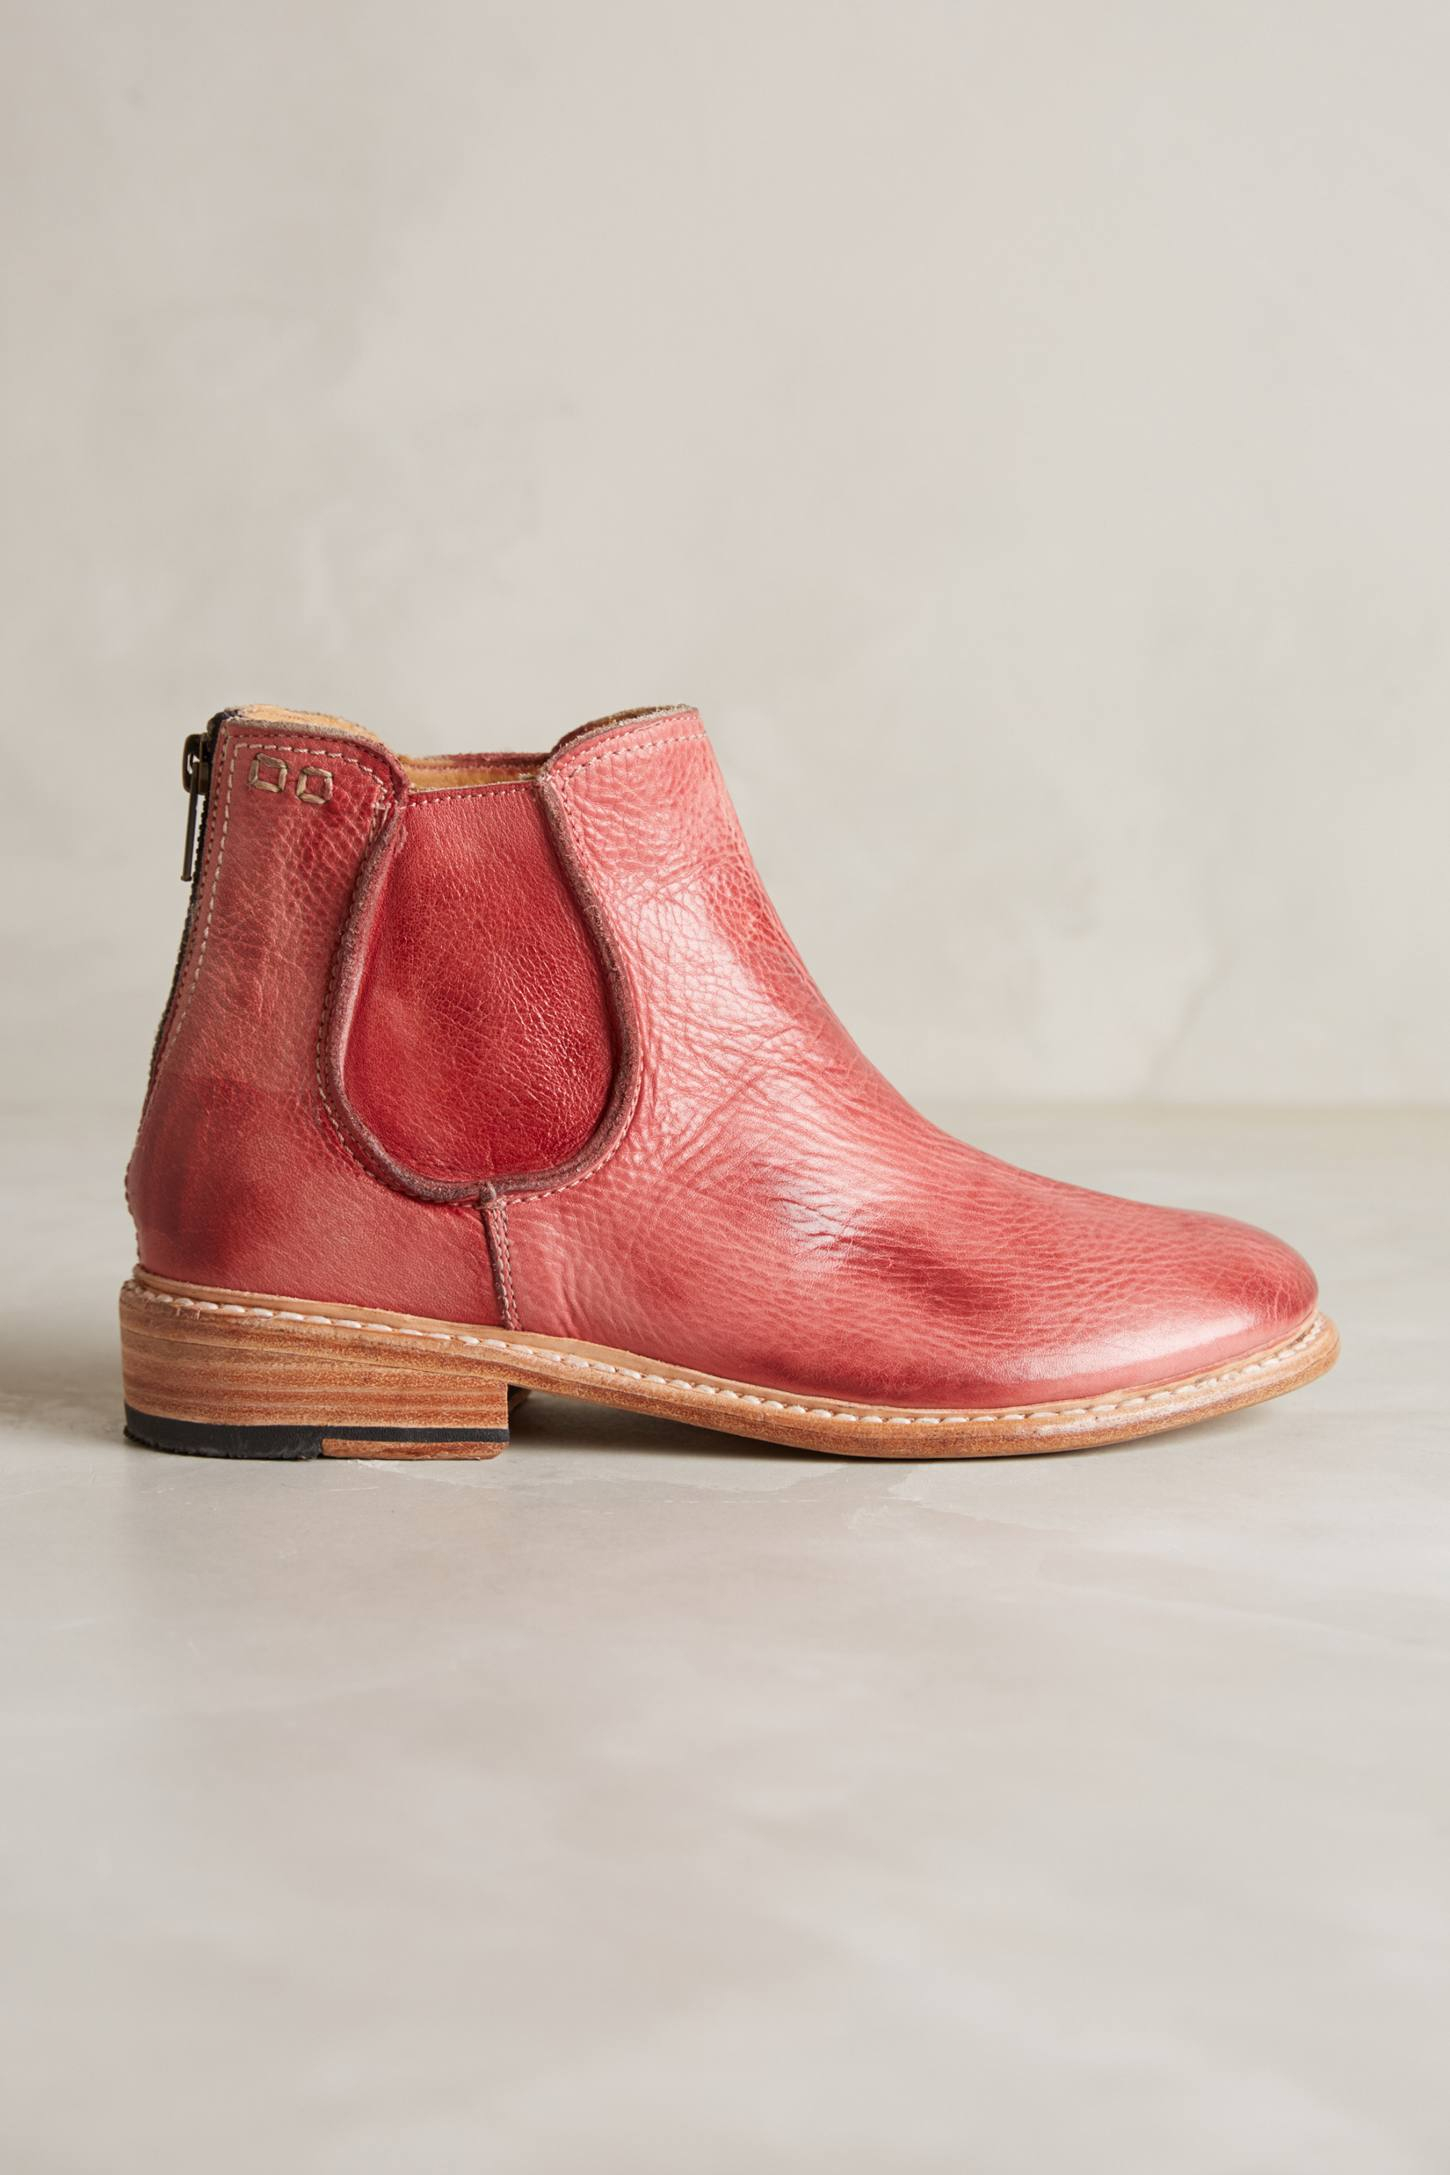 Bed stu Camp Boots in Red